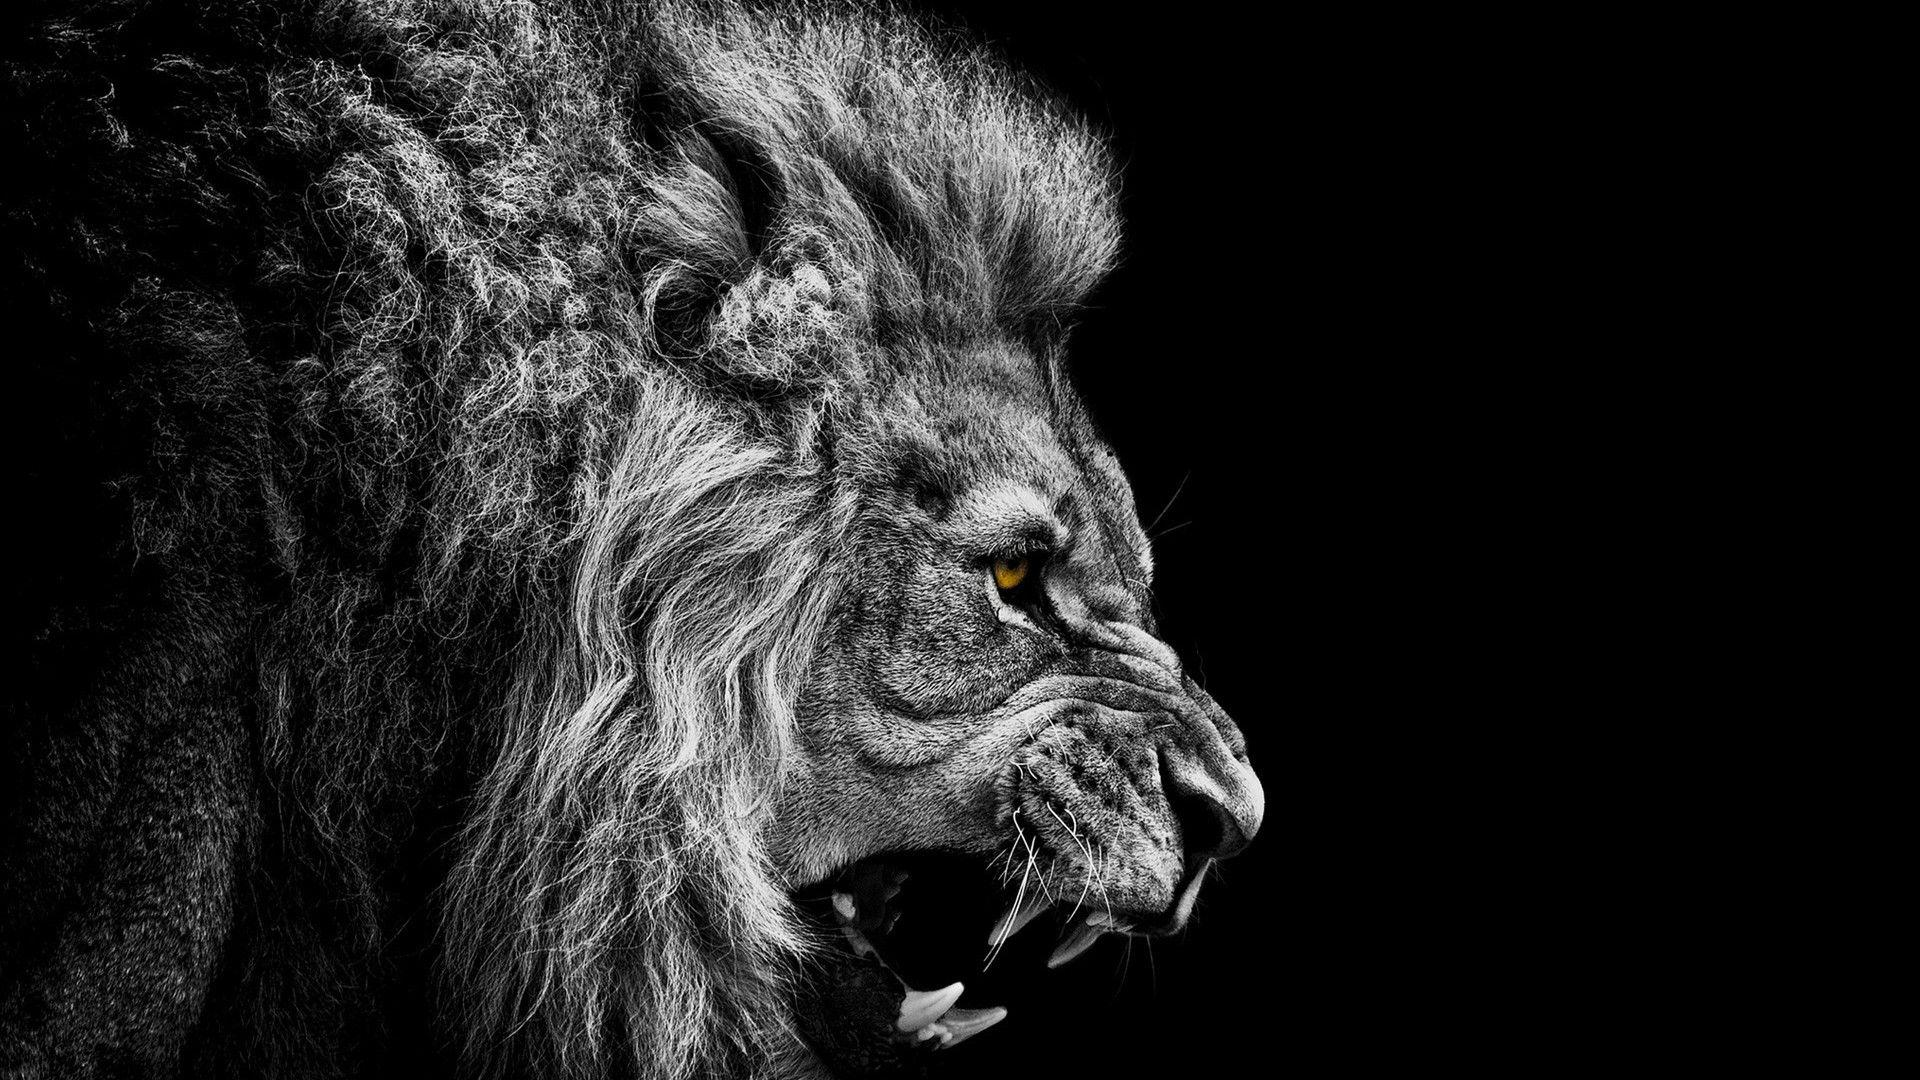 Black And White Lion Wallpapers - Wallpaper Cave